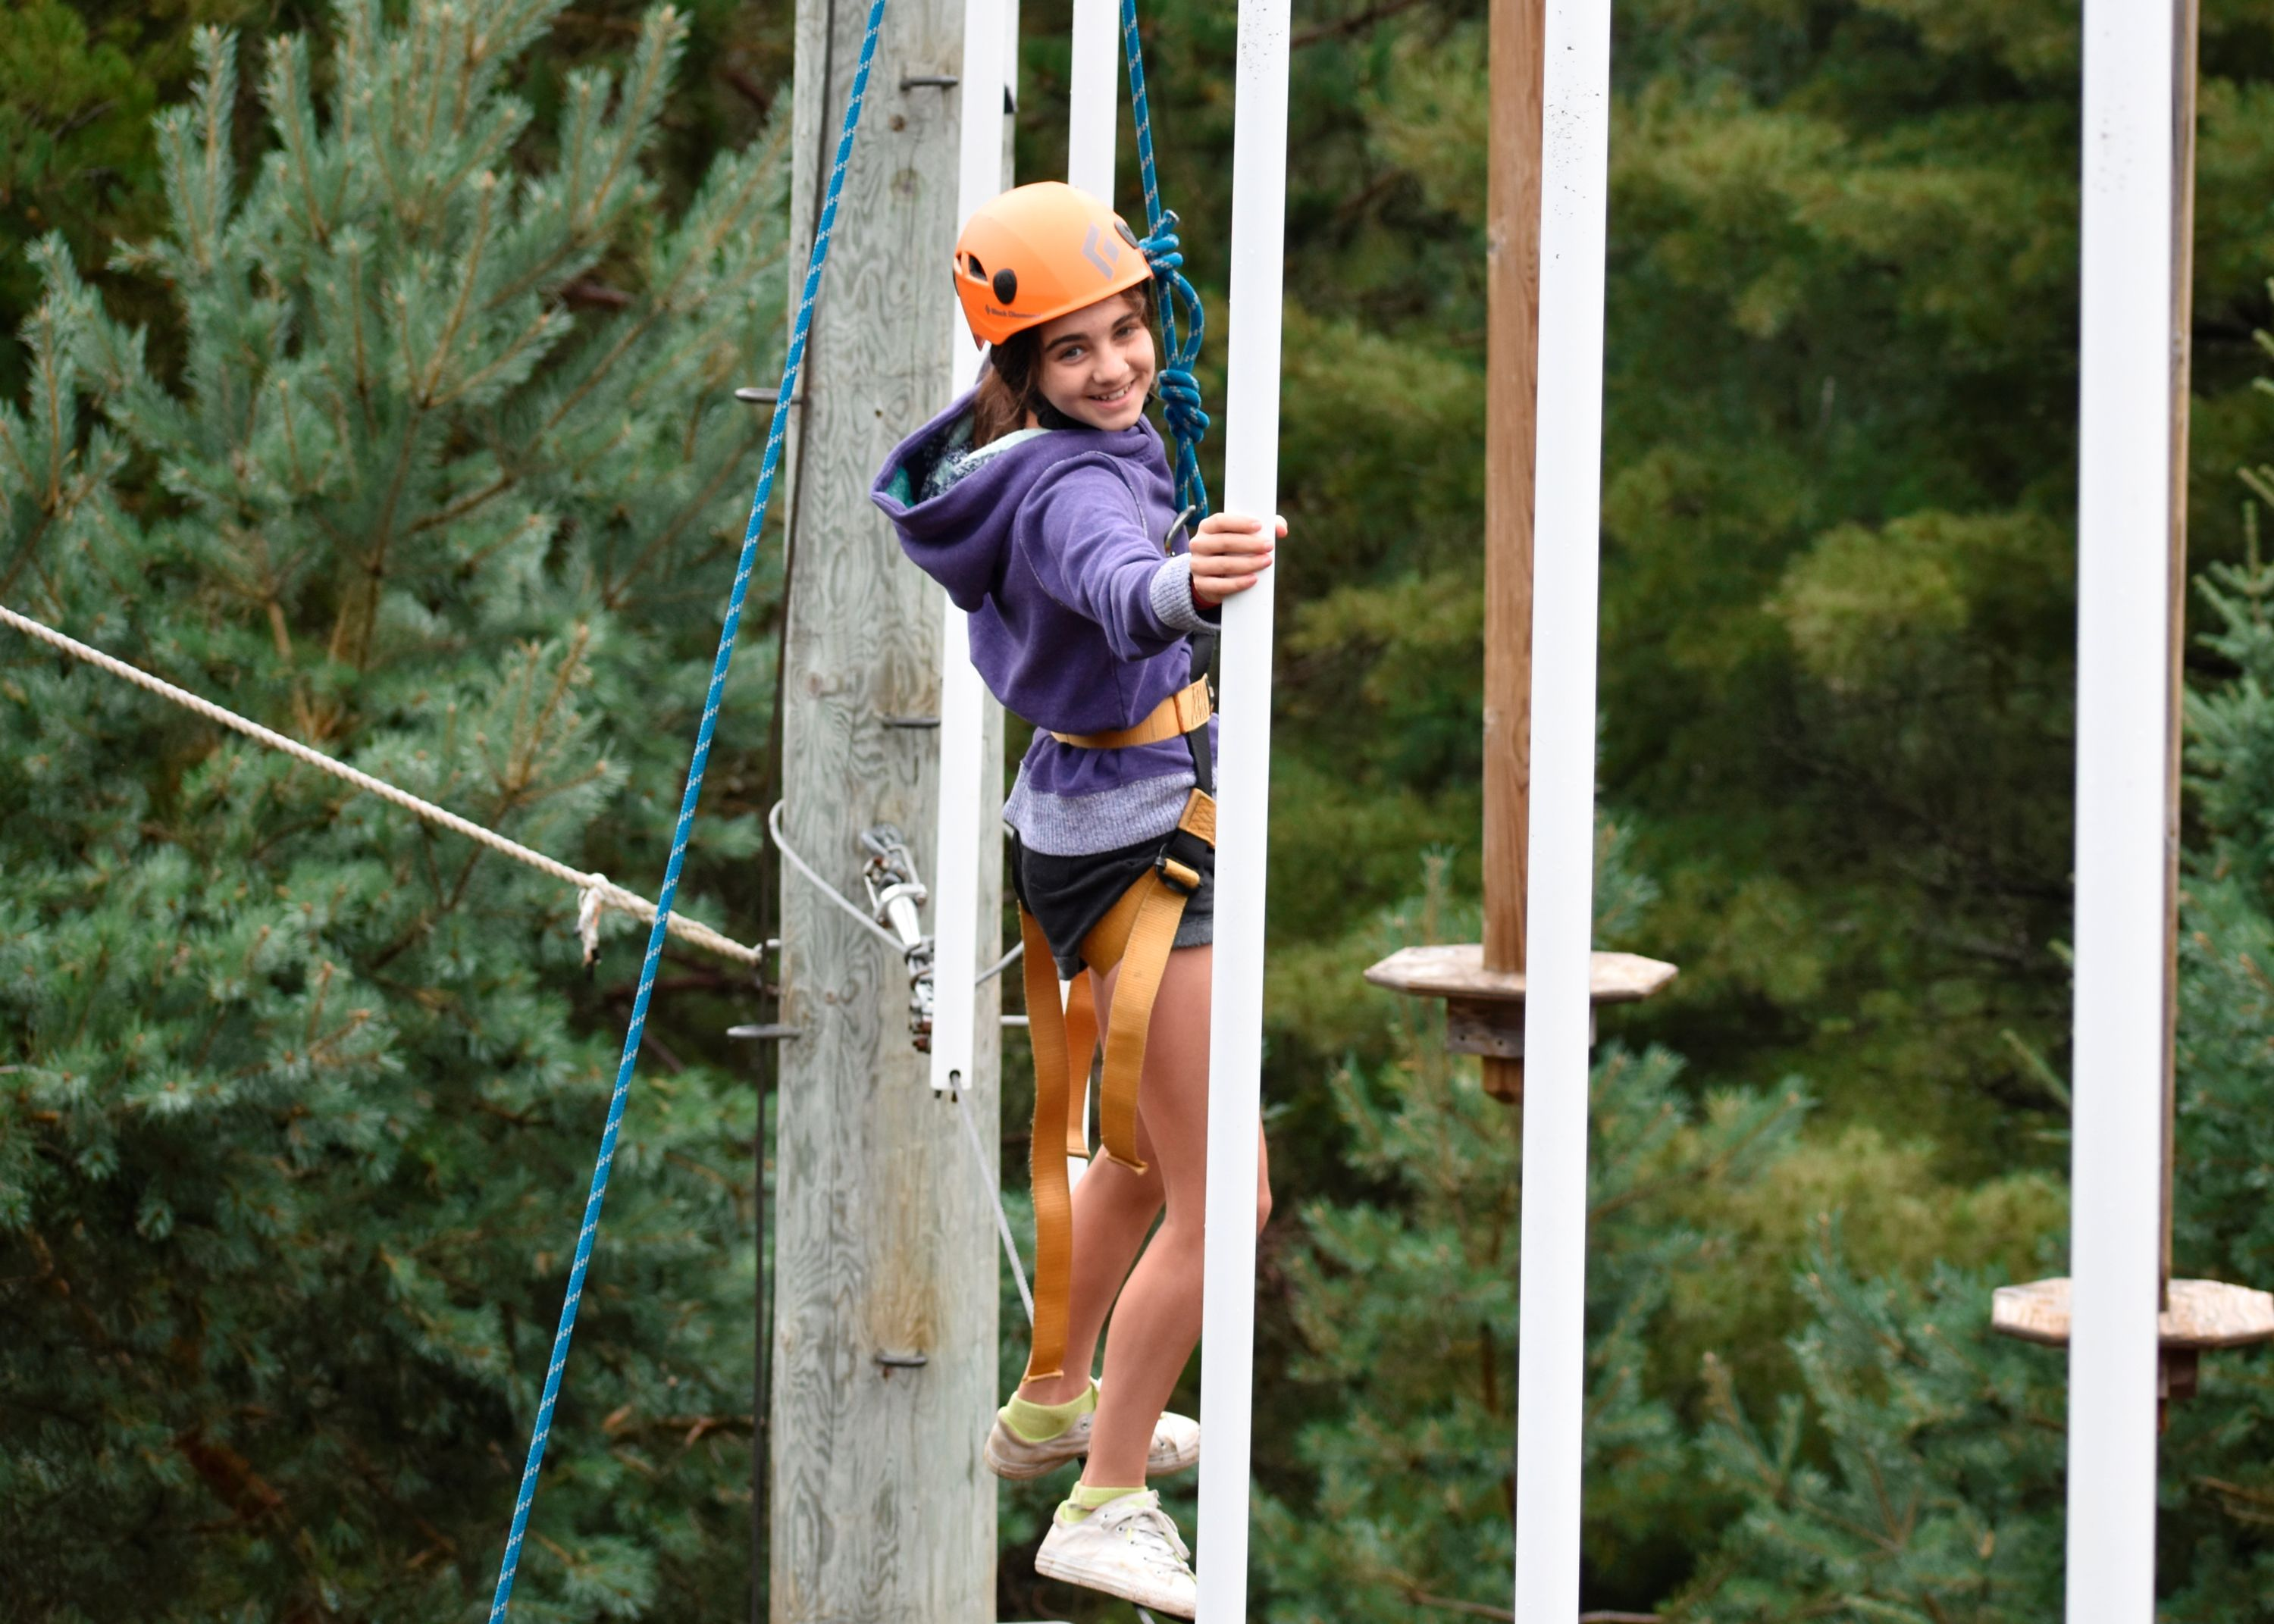 Camper doing high ropes at christian adventure summer camp in haliburton, ontario